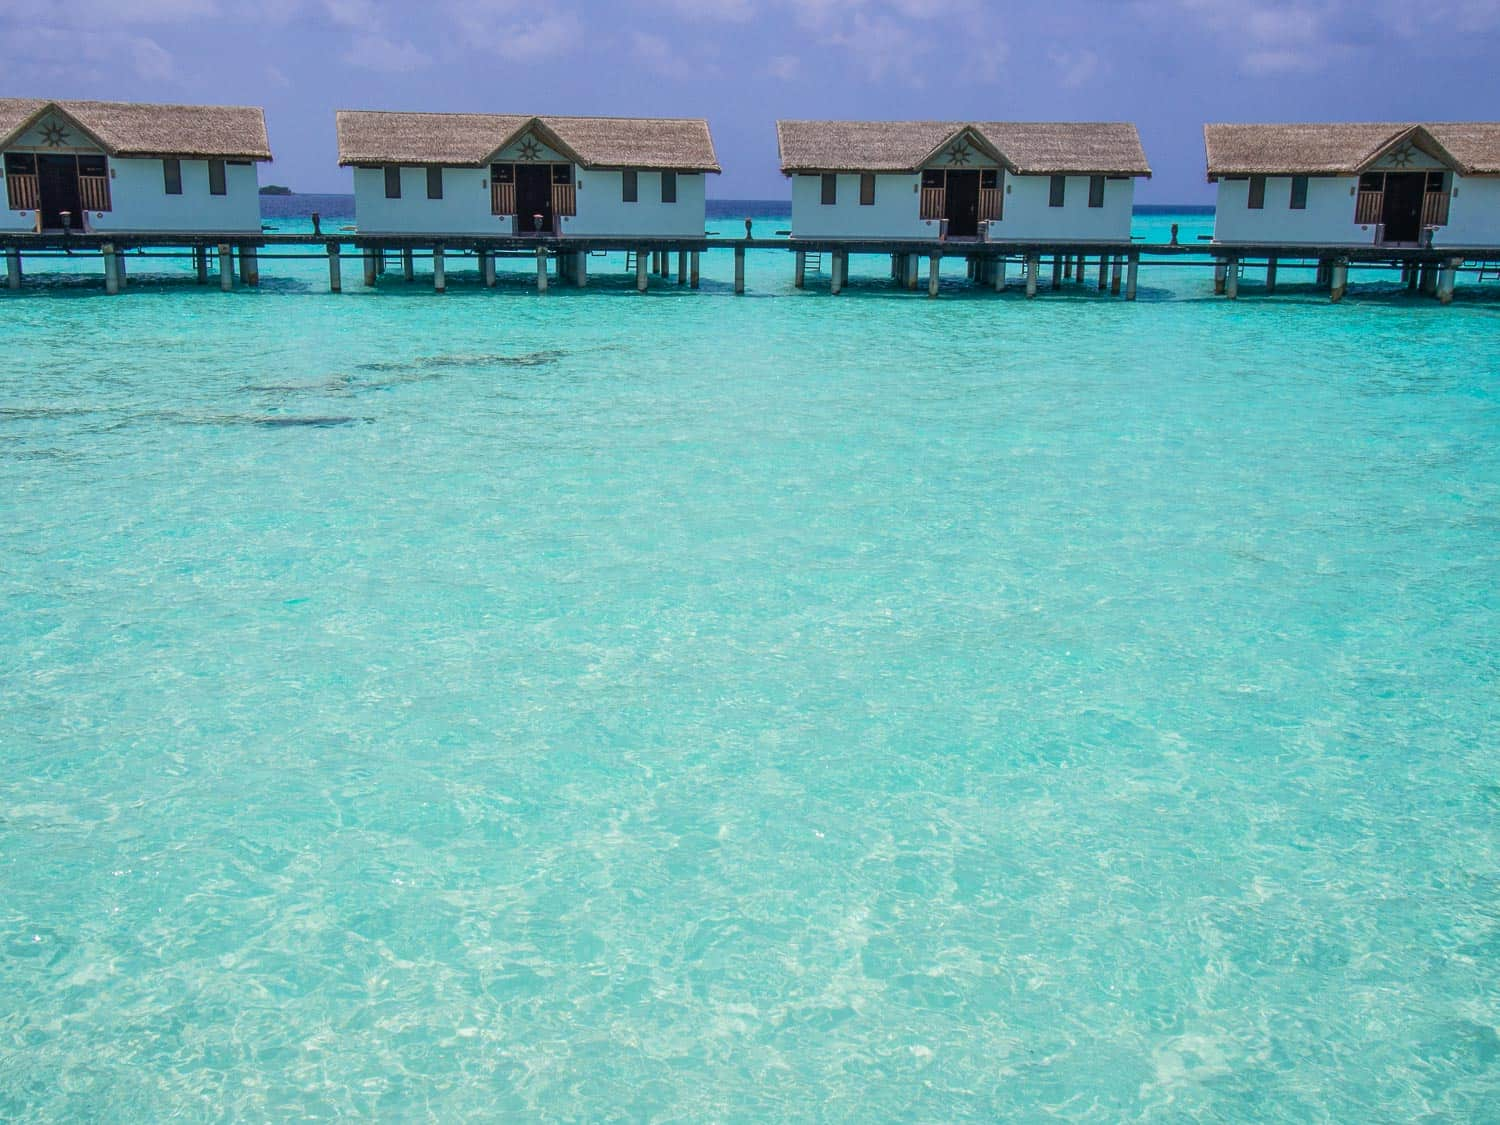 A Dream Come True: Staying in an Overwater Bungalow in the Maldives. Reethi Beach Resort has some of the most affordable (but still luxurious) overwater bungalows in the Maldives.